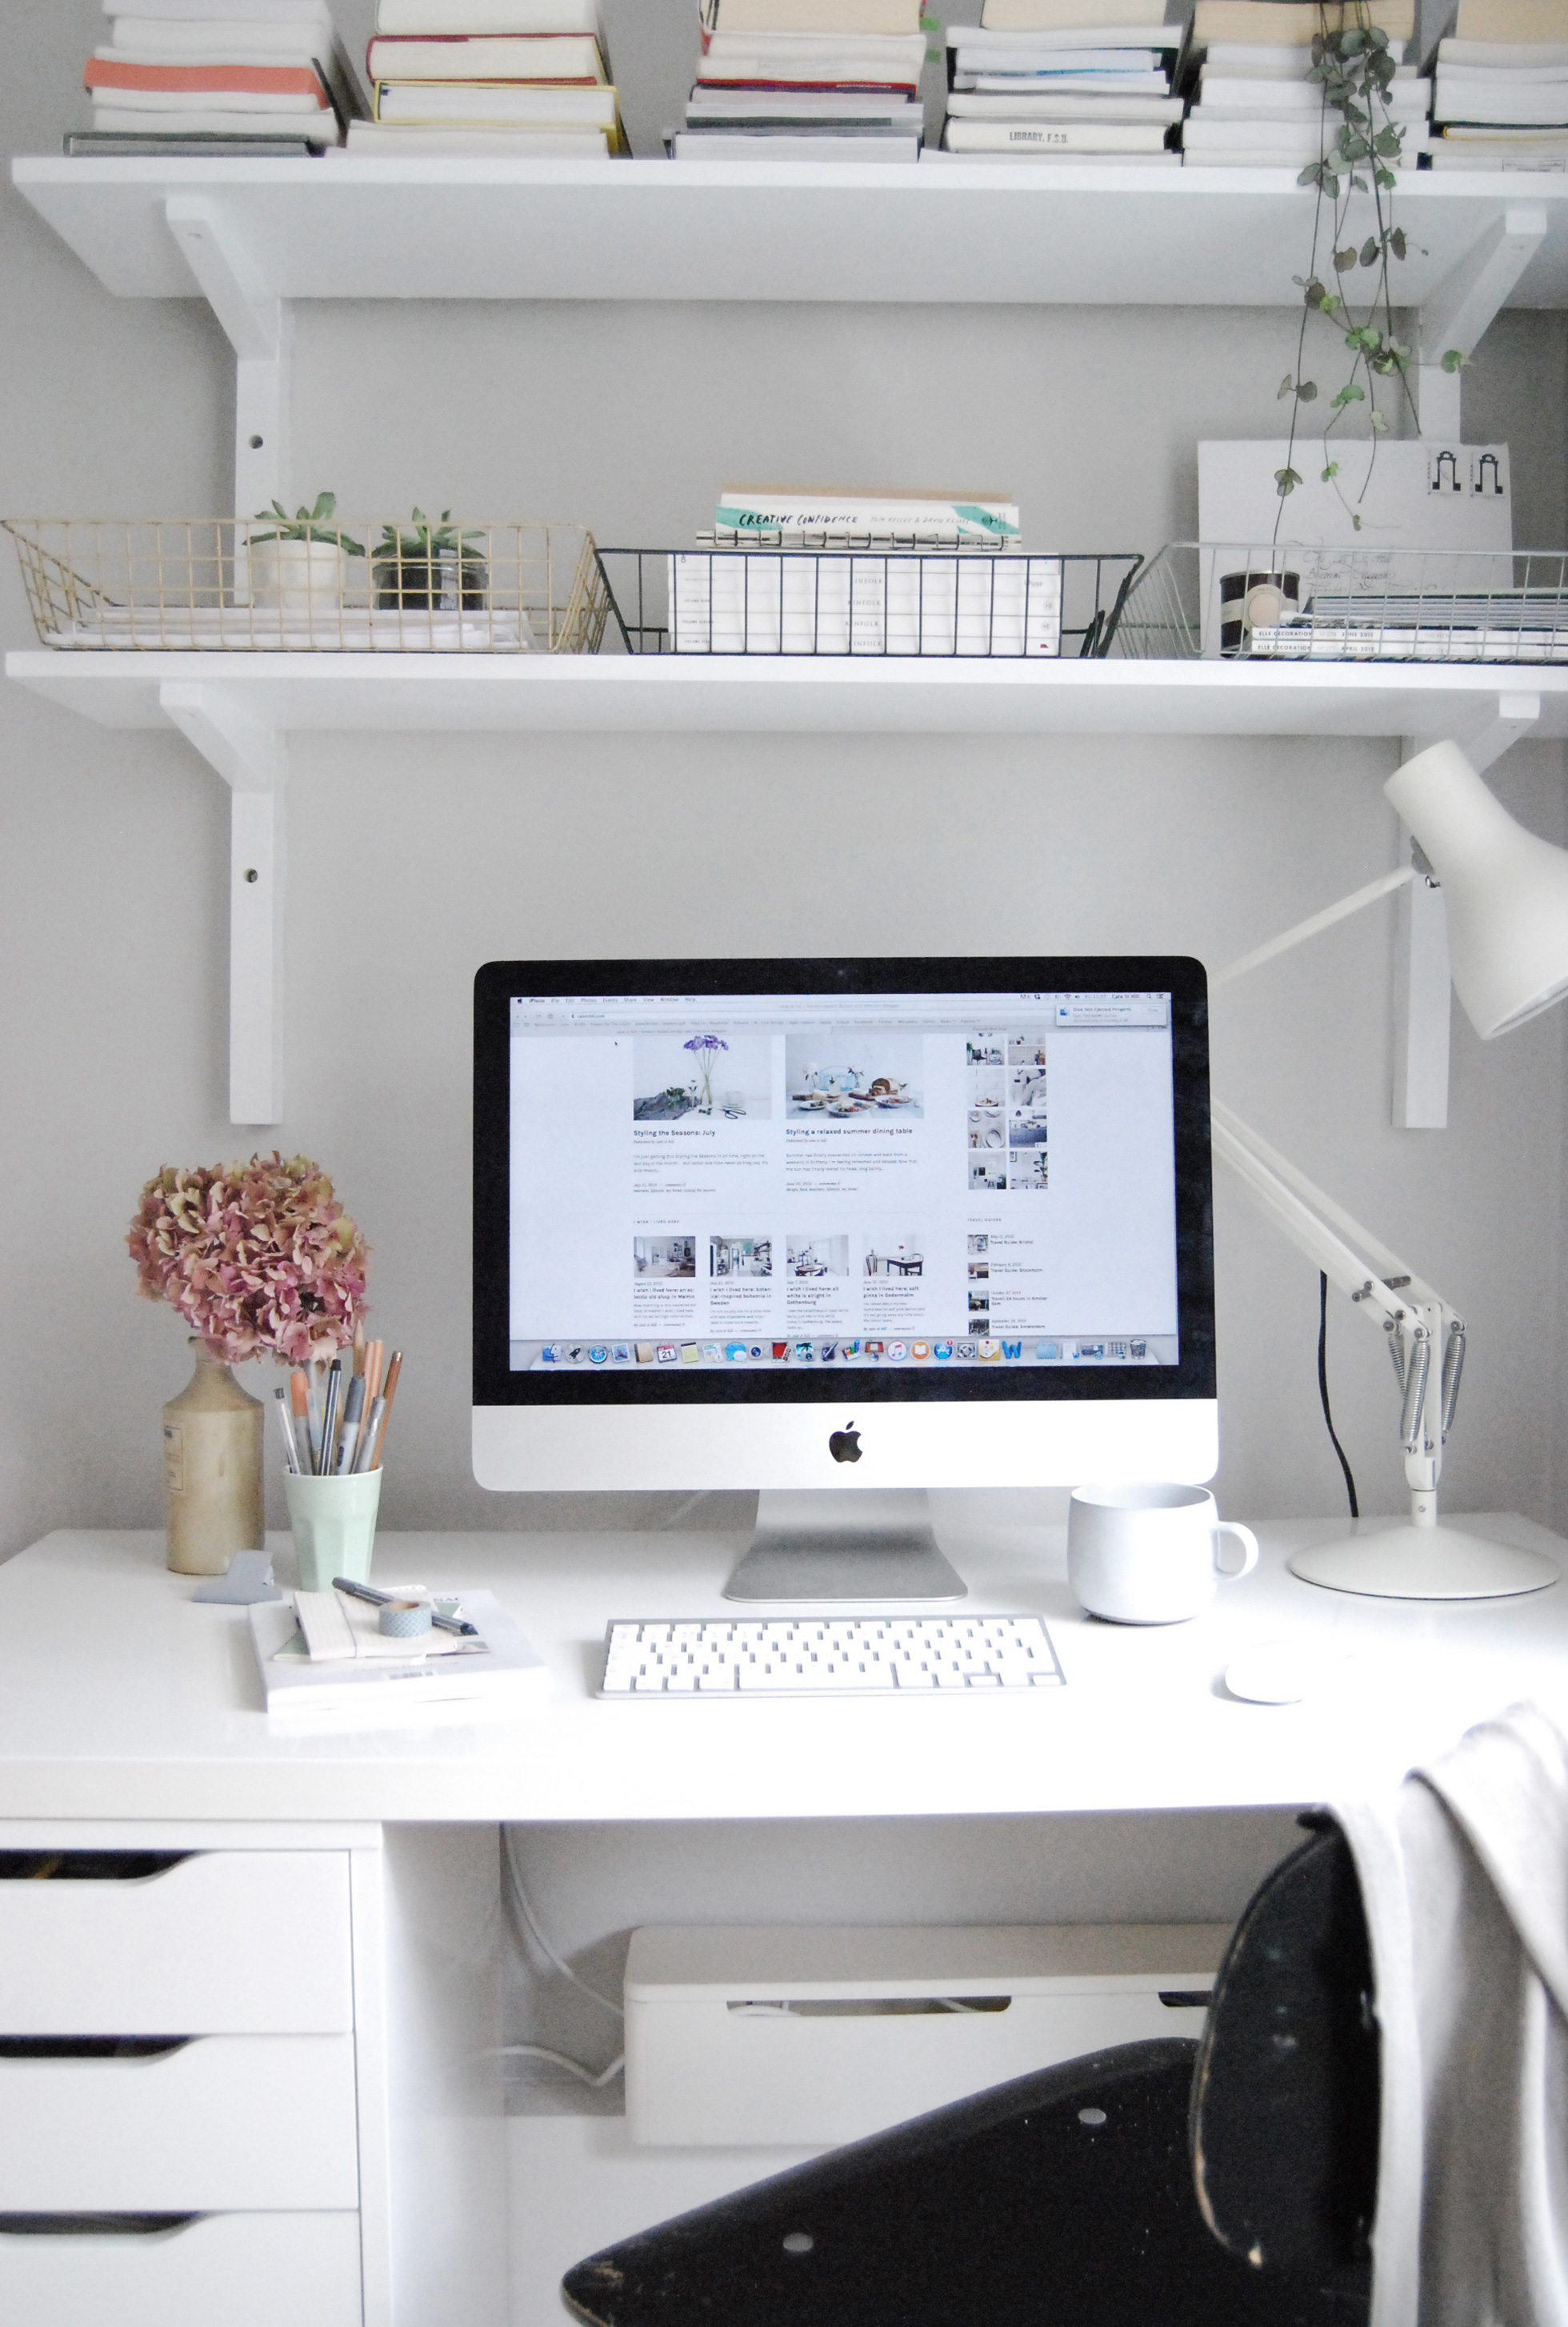 Home Organization Tips | Declutter Your Home | HouseLogic